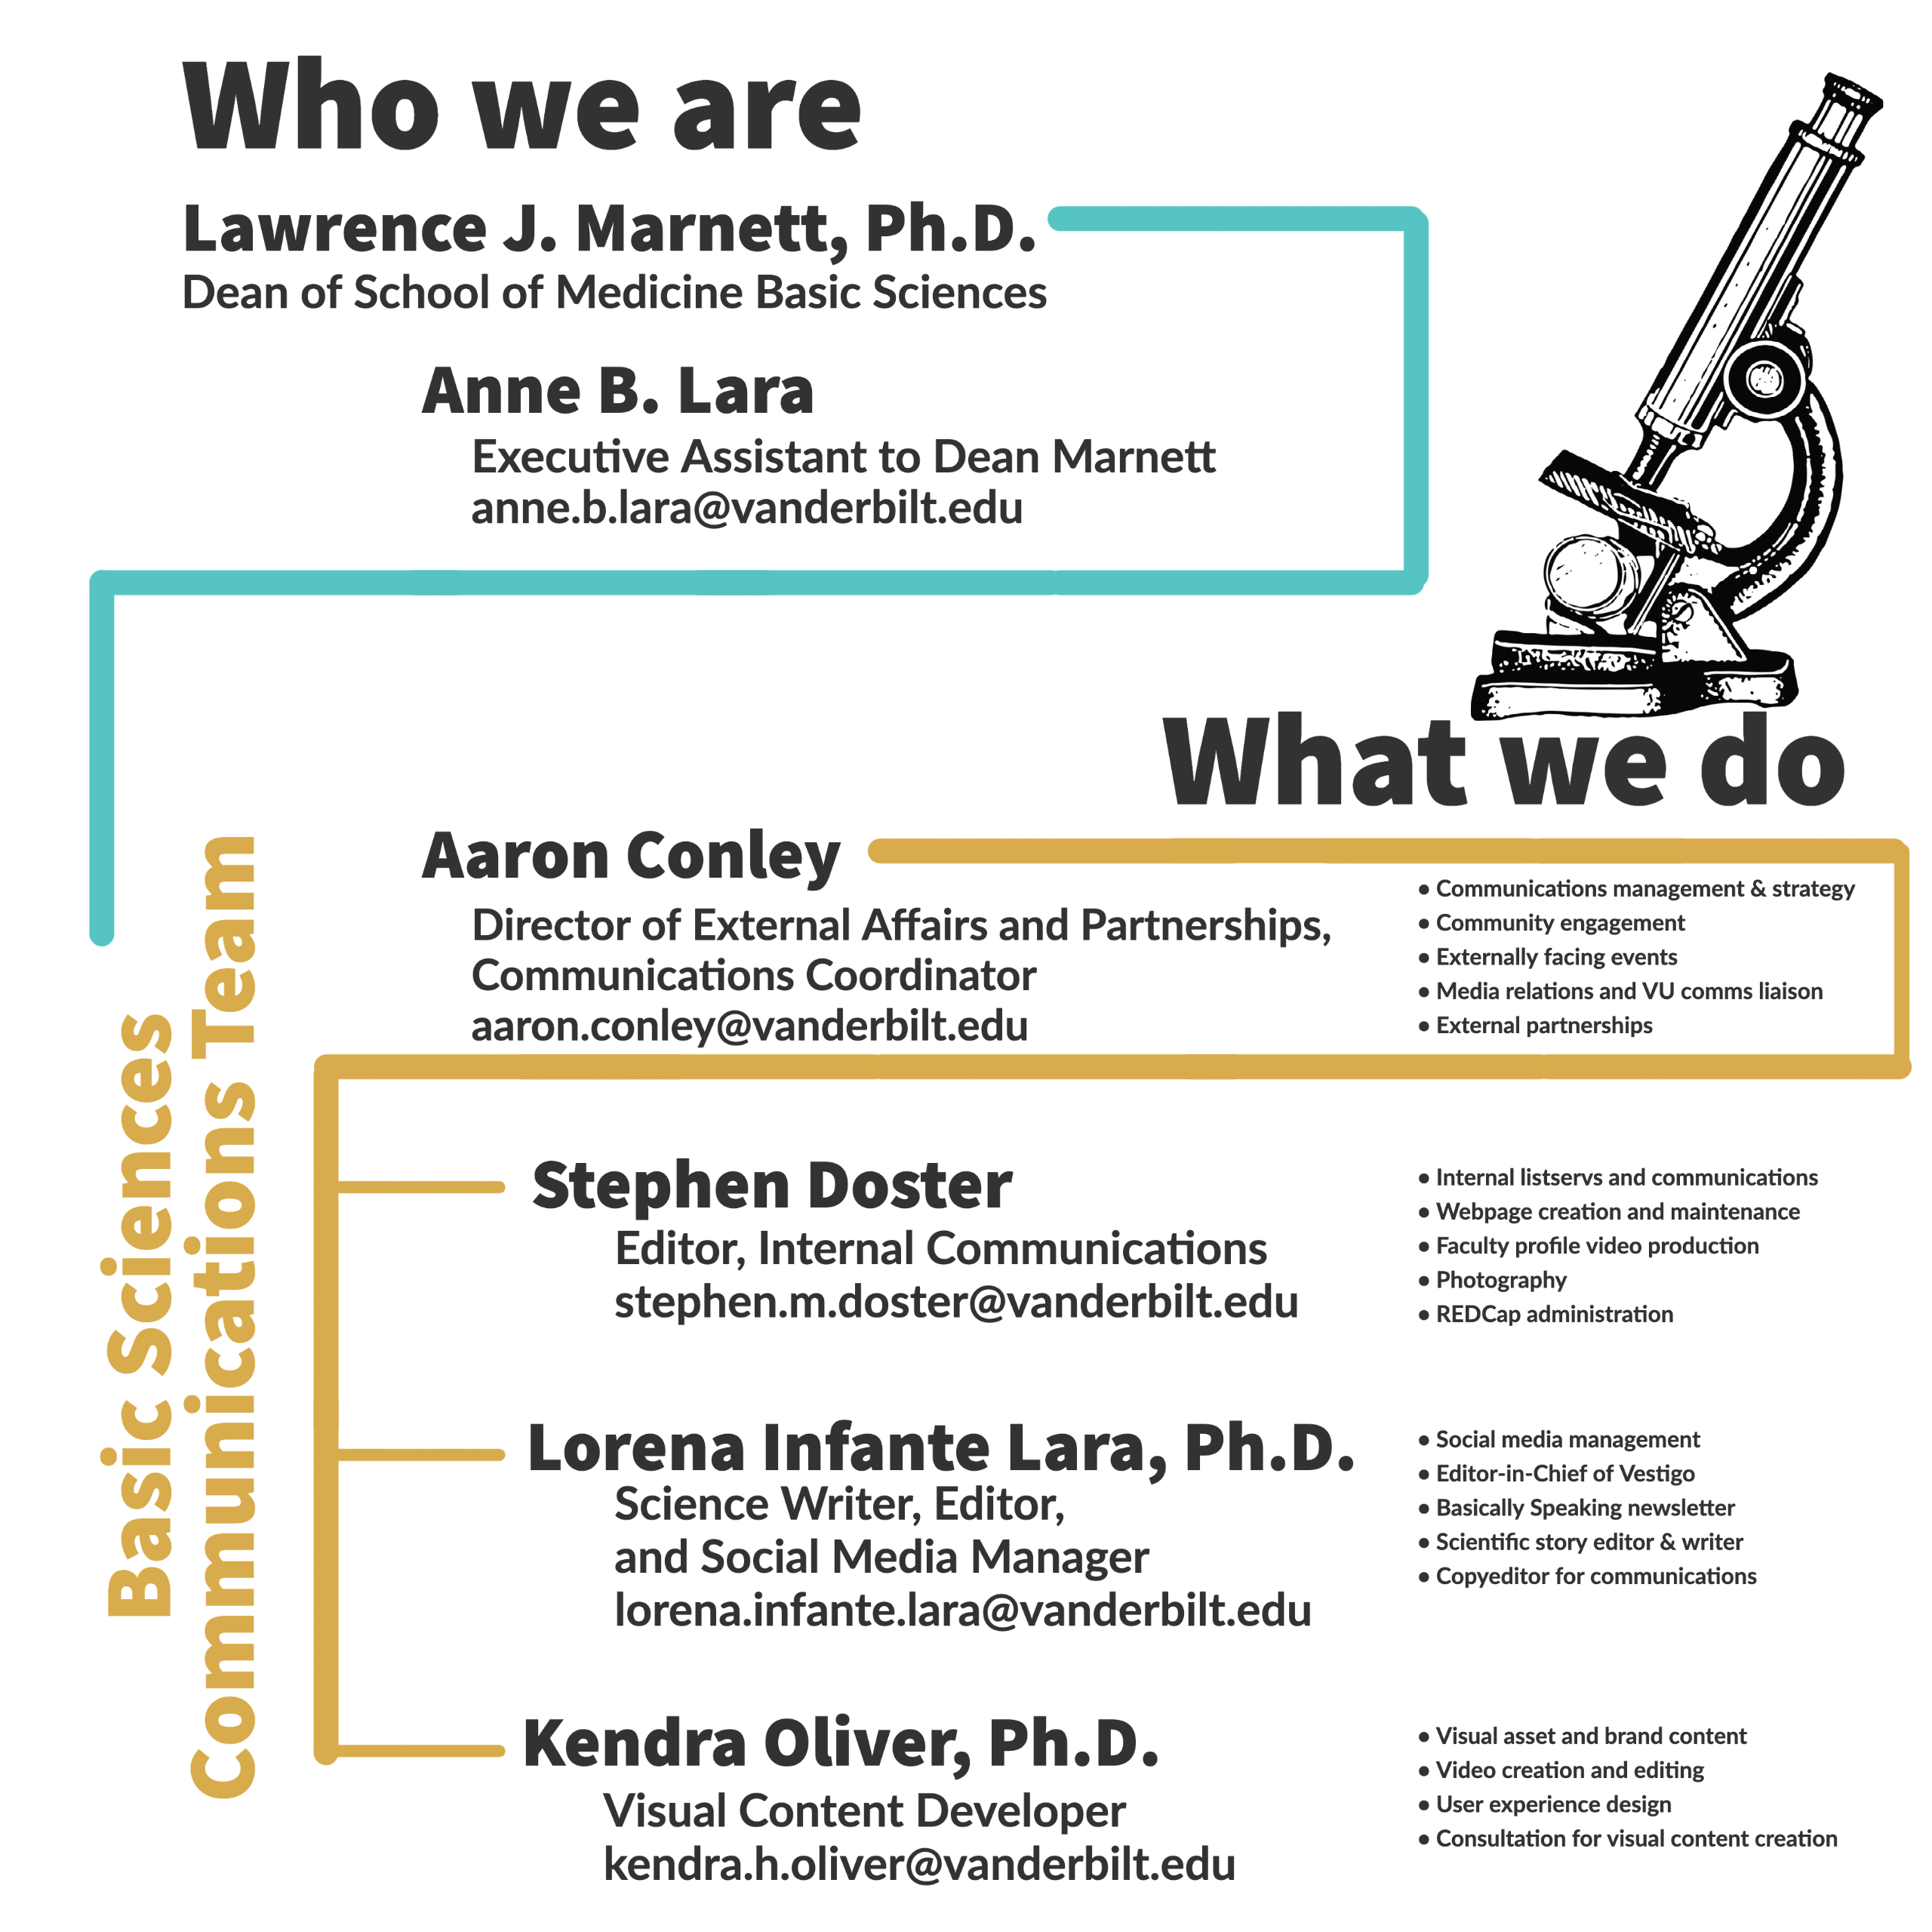 """Schematic showing the staff of the Dean's Office and the Basic Sciences Communications team. At the top is Lawrence J. Marnett, Ph.D., Dean of School of Medicine Basic Sciences. Below him is Anne B. Lara, Executive Assistant to Dean Marnett, anne.b.lara@vanderbilt.edu. A line connects Dean Marnett to the Comms Team, which lists Aaron Conley at the top. Conley is Director of External Affairs and Partnerships and Communications Coordinator (aaron.conley@vanderbilt.edu). Under Conley are listed 3 more people: Stephen Doster (Editor, Internal Communications; stephen.m.doster@vanderbilt.edu), Lorena Infante Lara, Ph.D. (Science Writer, Editor, and Social Media Manager; lorena.infante.lara@vanderbilt.edu), and Kendra H. Oliver (Visual Content Developer; kendra.h.oliver@vanderbilt.edu). Next to each of the names of the comms teams members are a few bullet points describing aspects of each person's job. If you're not sure who to contact, please reach out to Aaron Conley and he will direct you to the appropriate person. Each person's name is under a title near the top that says """"Who we are,"""" and the brief job descriptions are listed under """"What we do"""" (on the right side). A drawing of a light microscope is on top of the """"What we do"""" text."""